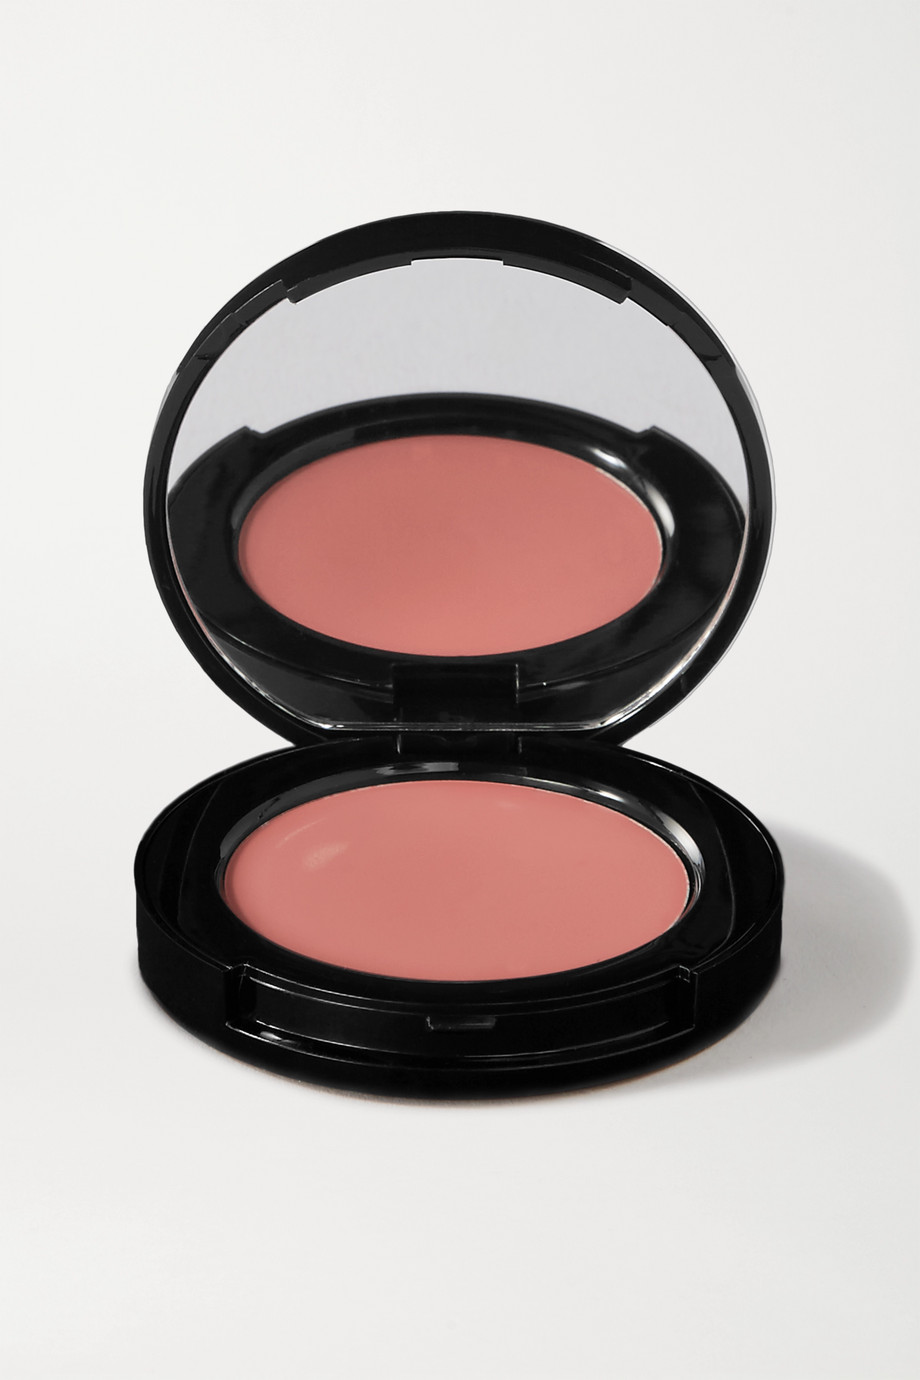 Bobbi Brown Pot Rouge for Lips and Cheeks - Powder Pink